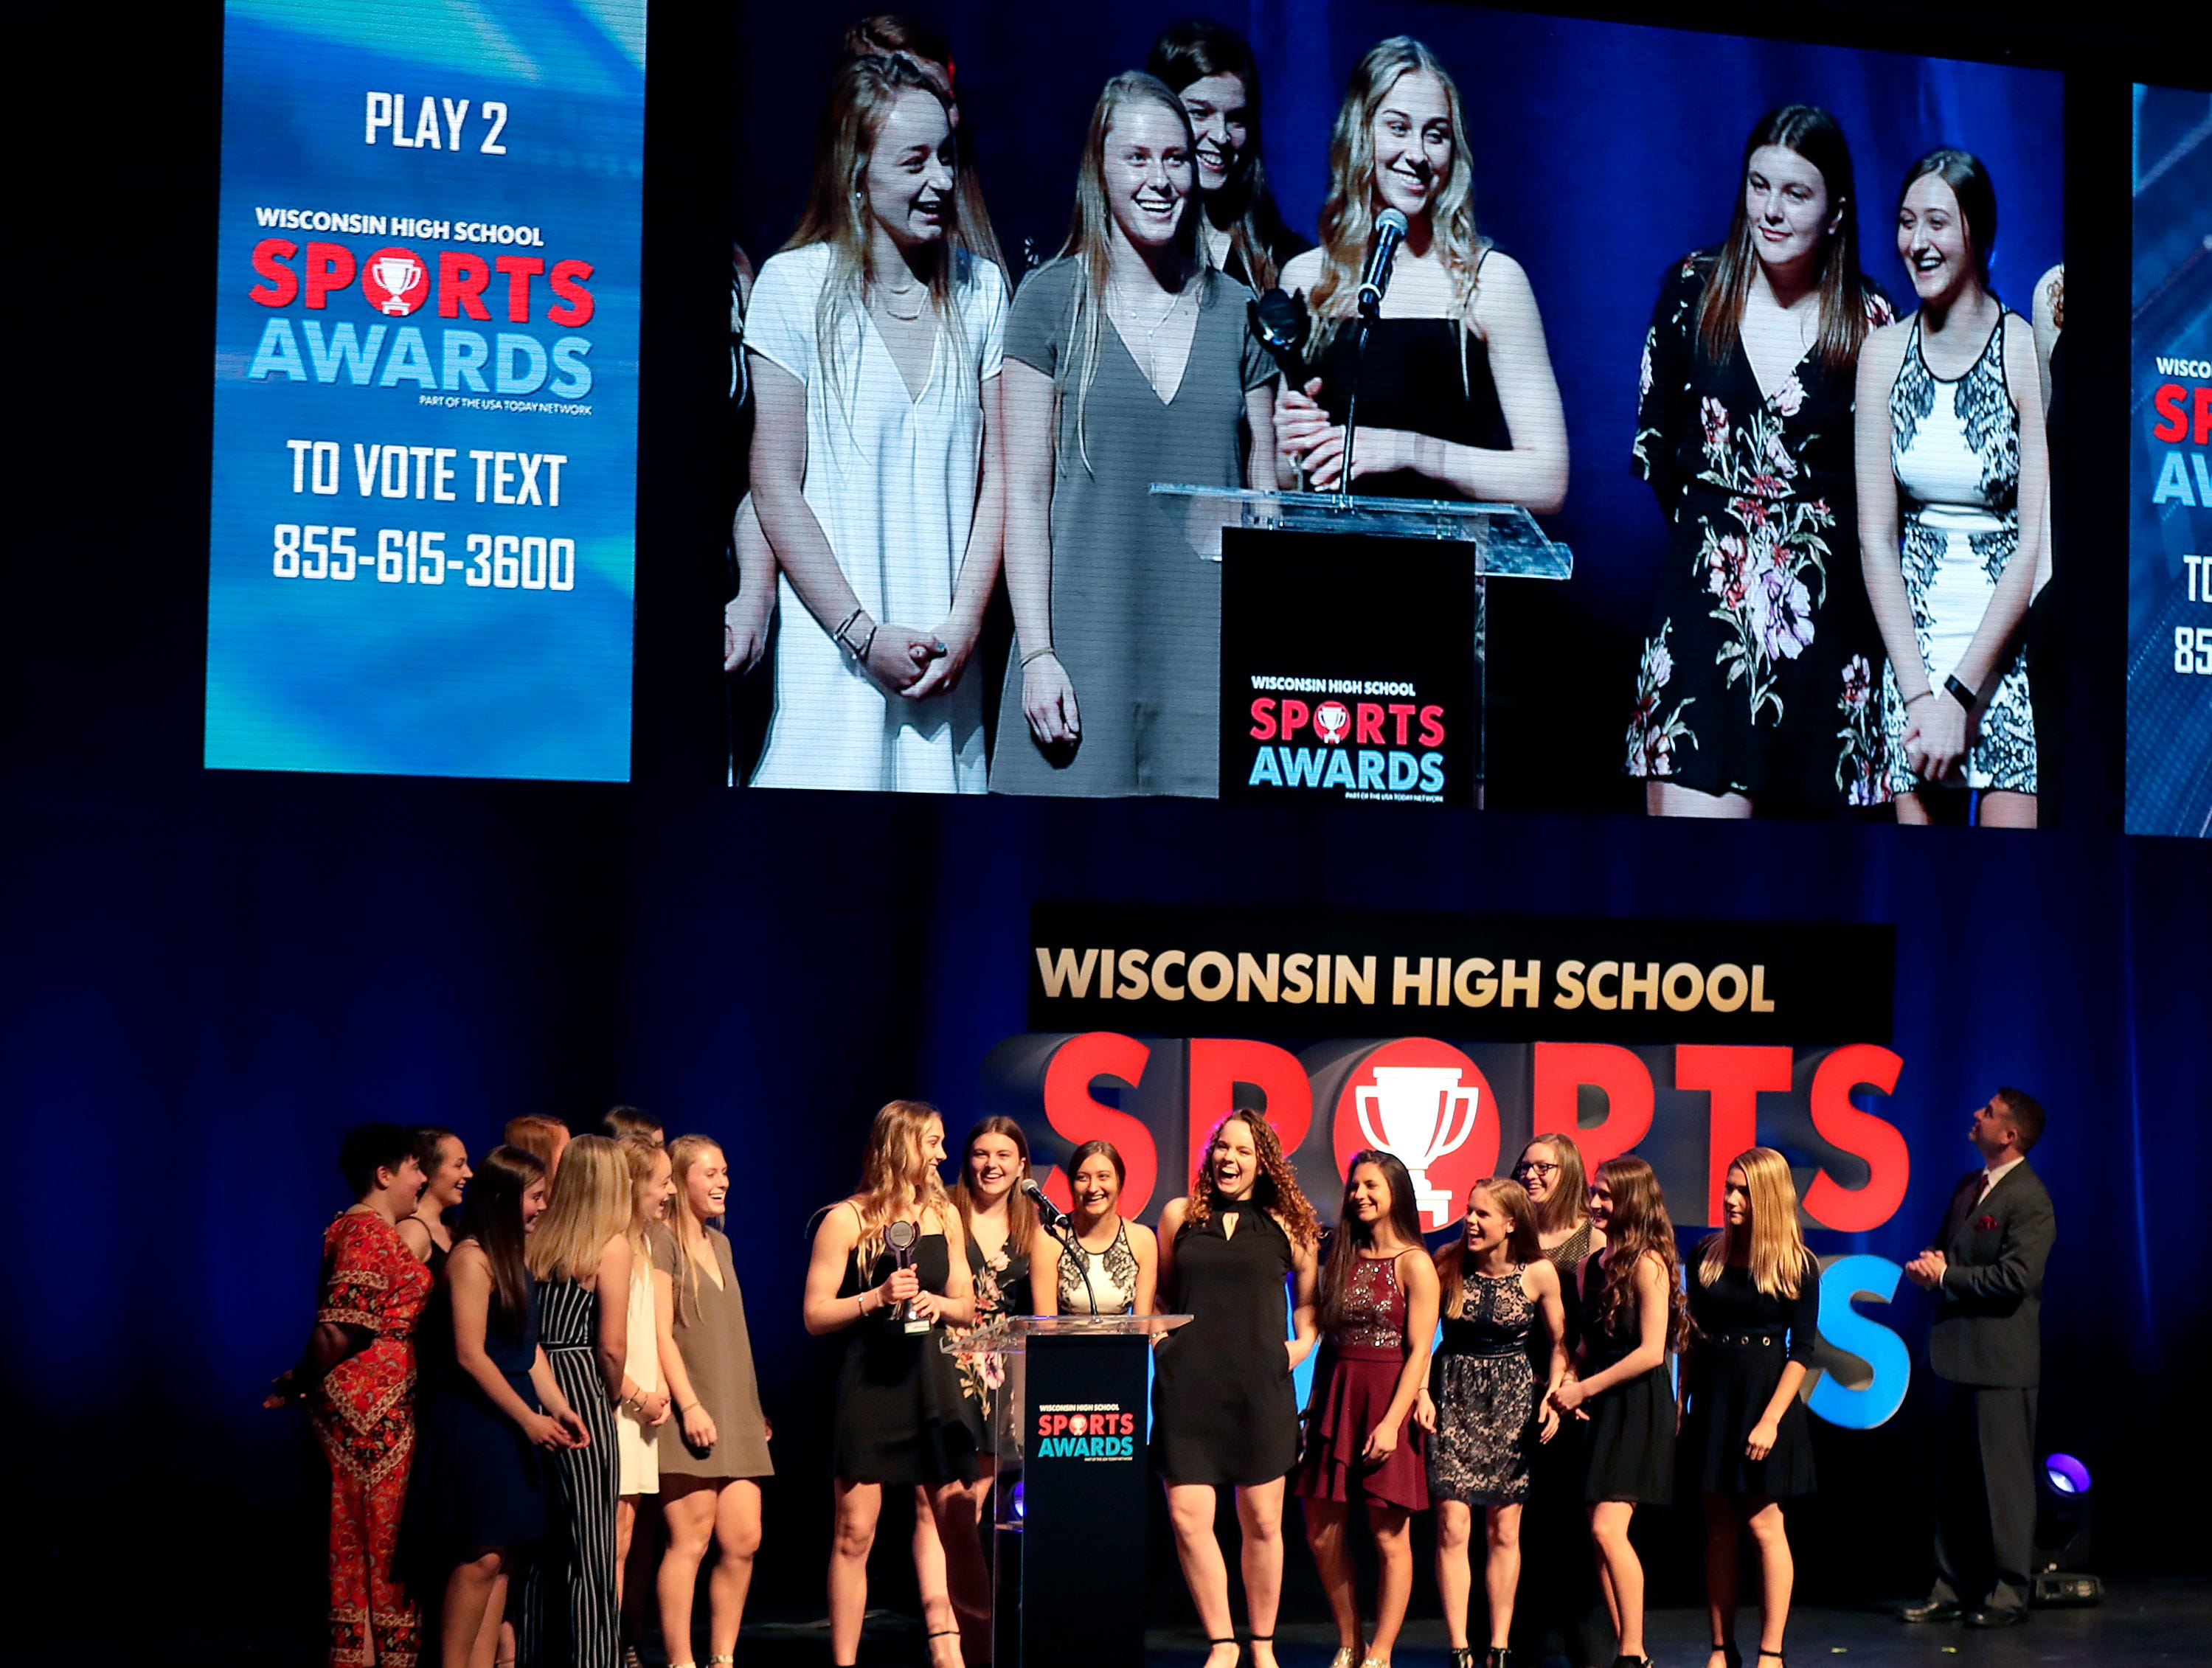 Play of the Year award, Fox Citie Stars girls hockey during the Wisconsin High School Sports Awards show at the Fox Cities Performing Arts Center on Wednesday, May 8, 2019, in Appleton, Wis. Olympic champion Michael Phelps was the guest speaker. The annual event was presented by USA TODAY NETWORK-Wisconsin.  Wm. Glasheen/USA TODAY NETWORK-Wisconsin.